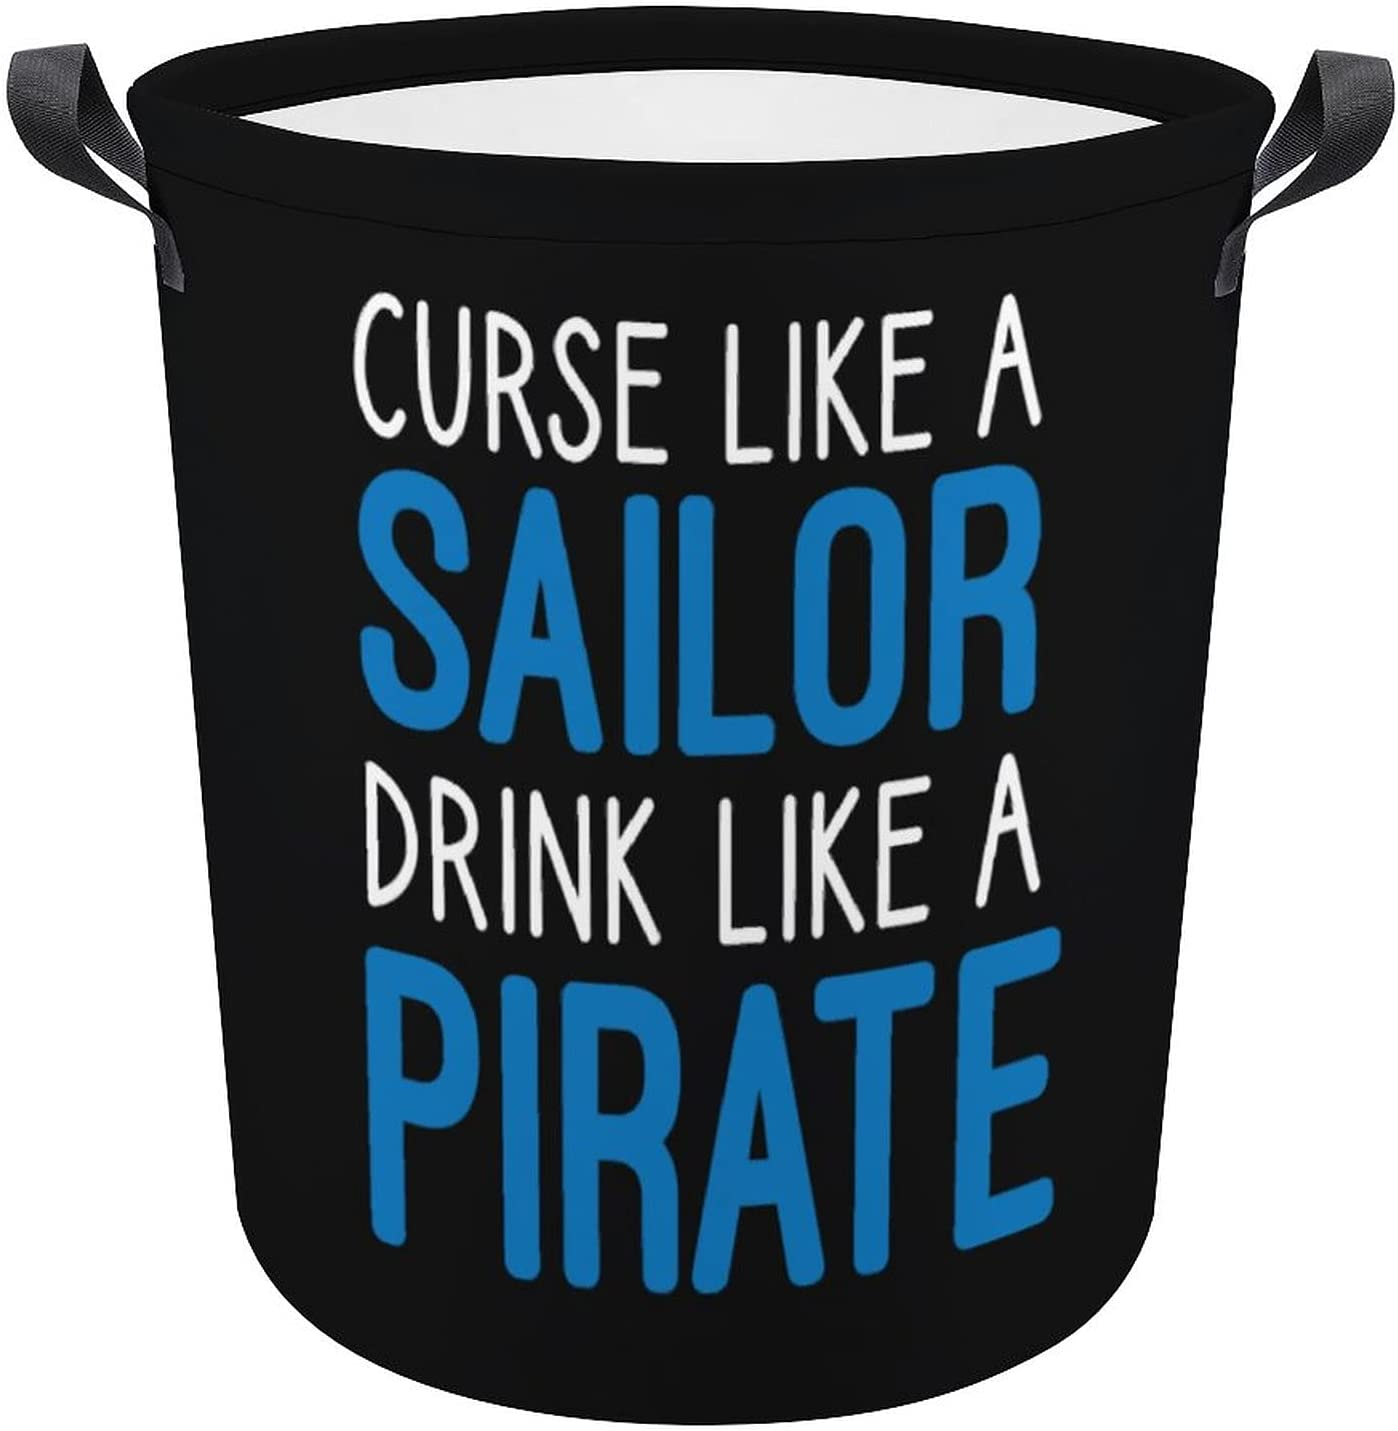 Curse We OFFer at cheap prices Like A Sailor Popular Drink Pirate La Blue Funny Quote Oxford Gift